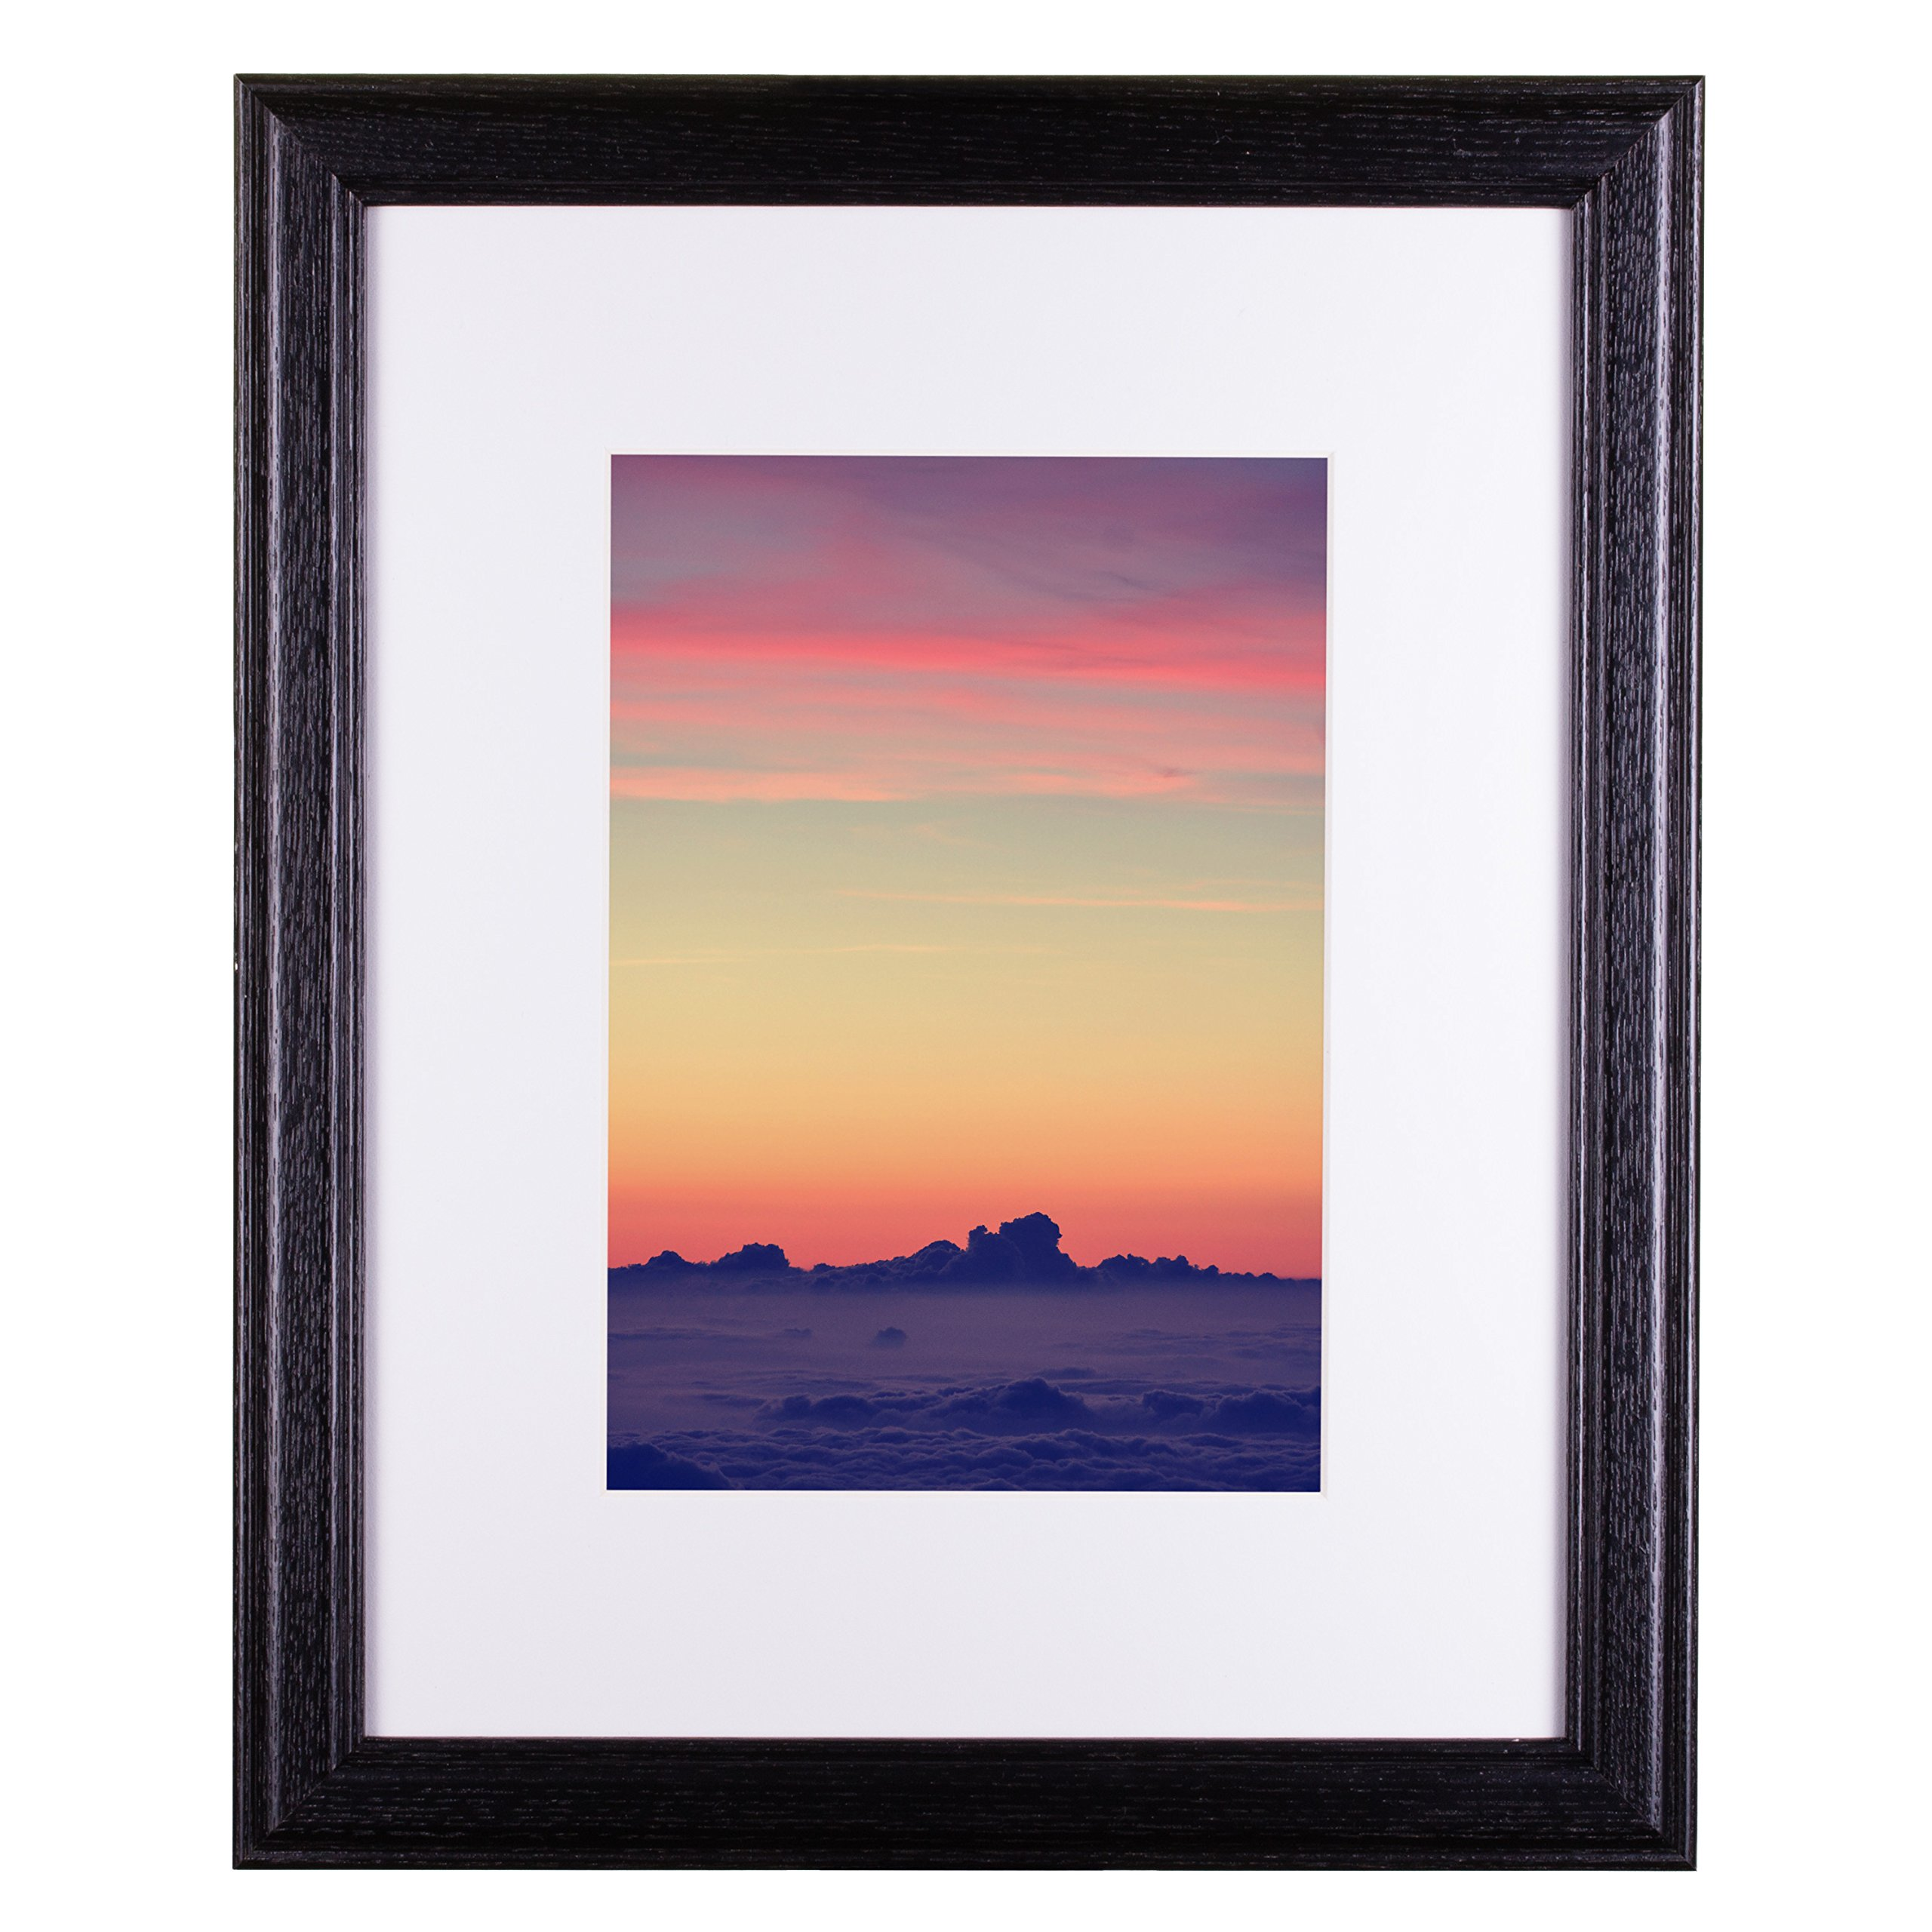 Craig Frames Wiltshire 236 Simple Hardwood Picture Frame with Single White Mat, Displays a 16 x 20 Inch Print with The Mat or 20 x 24 Inch Without The Mat, Black by Craig Frames